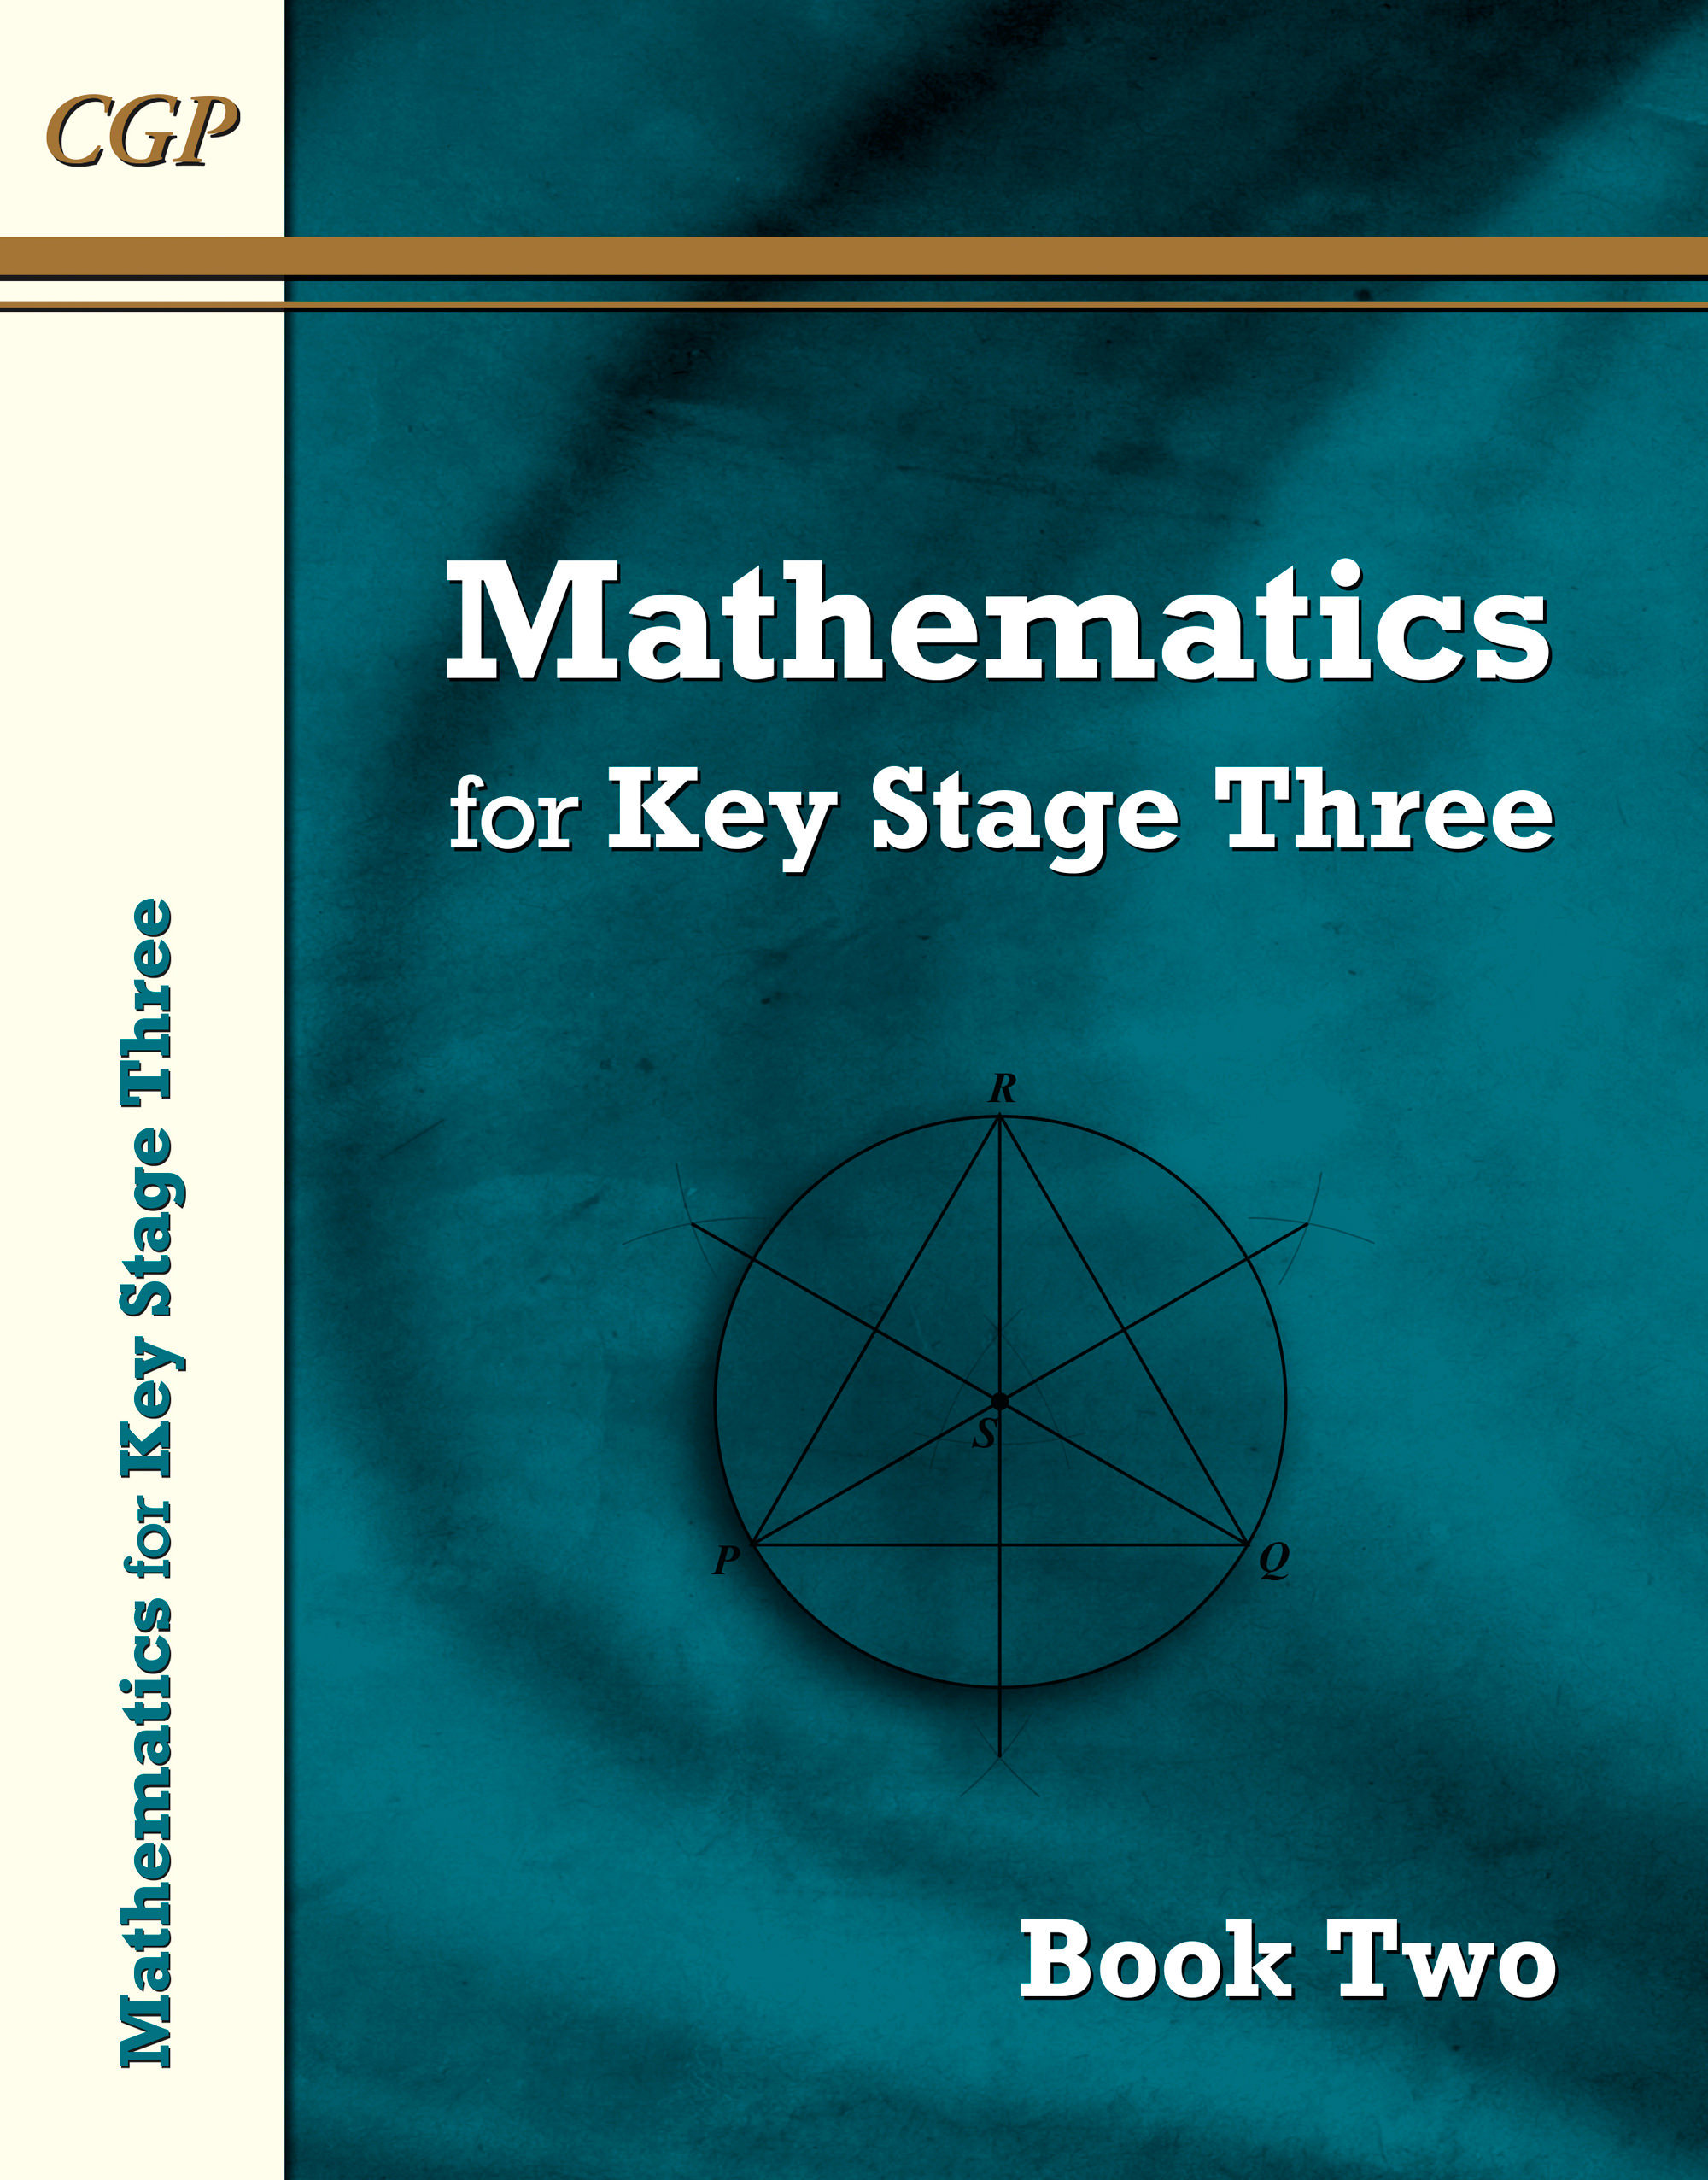 M2NN31DK - KS3 Maths Textbook 2